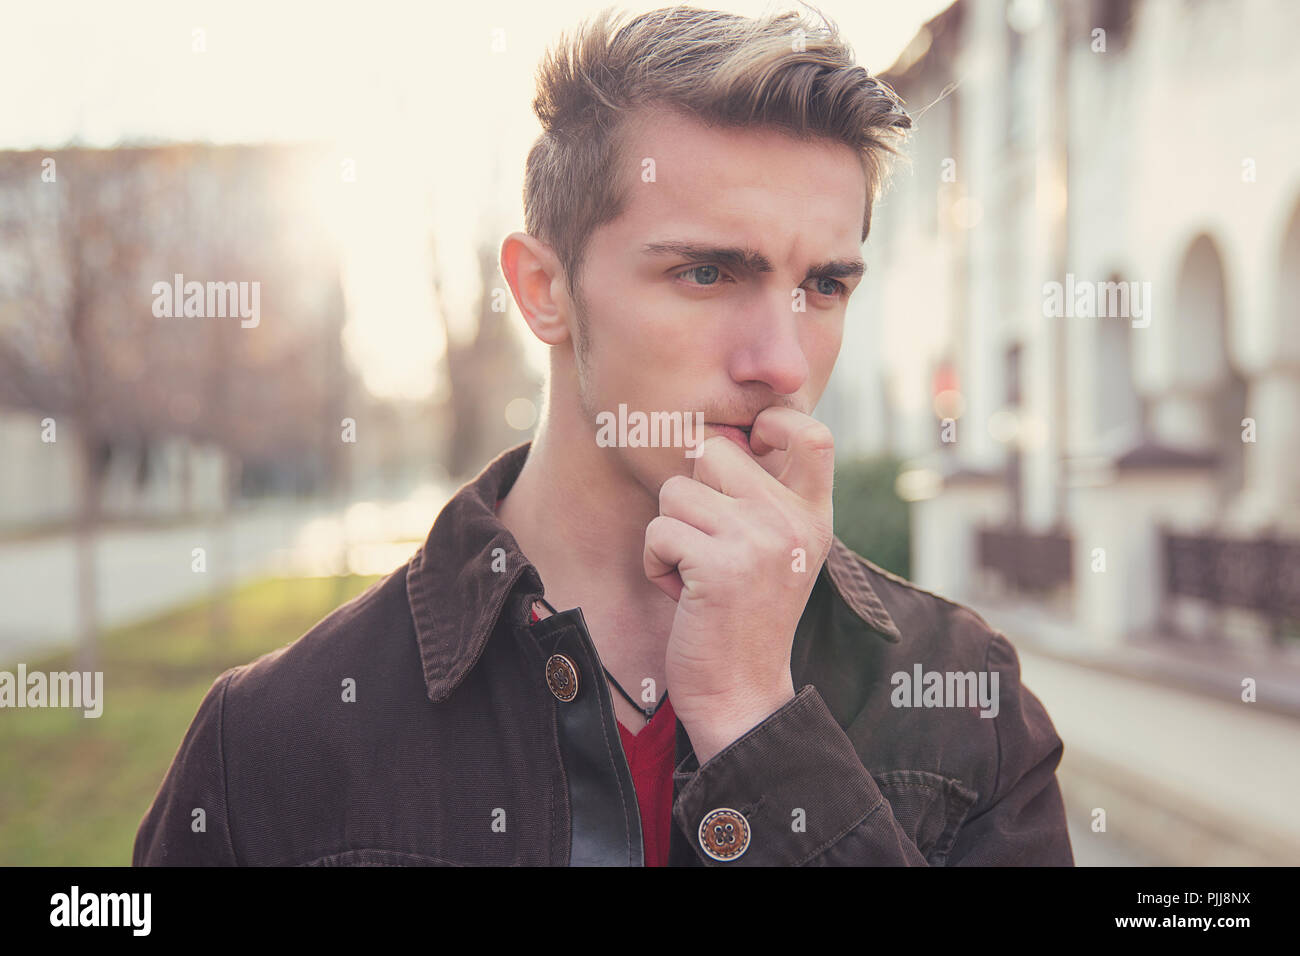 Young preoccupied man in doubts biting nails and looking away while standing on street - Stock Image